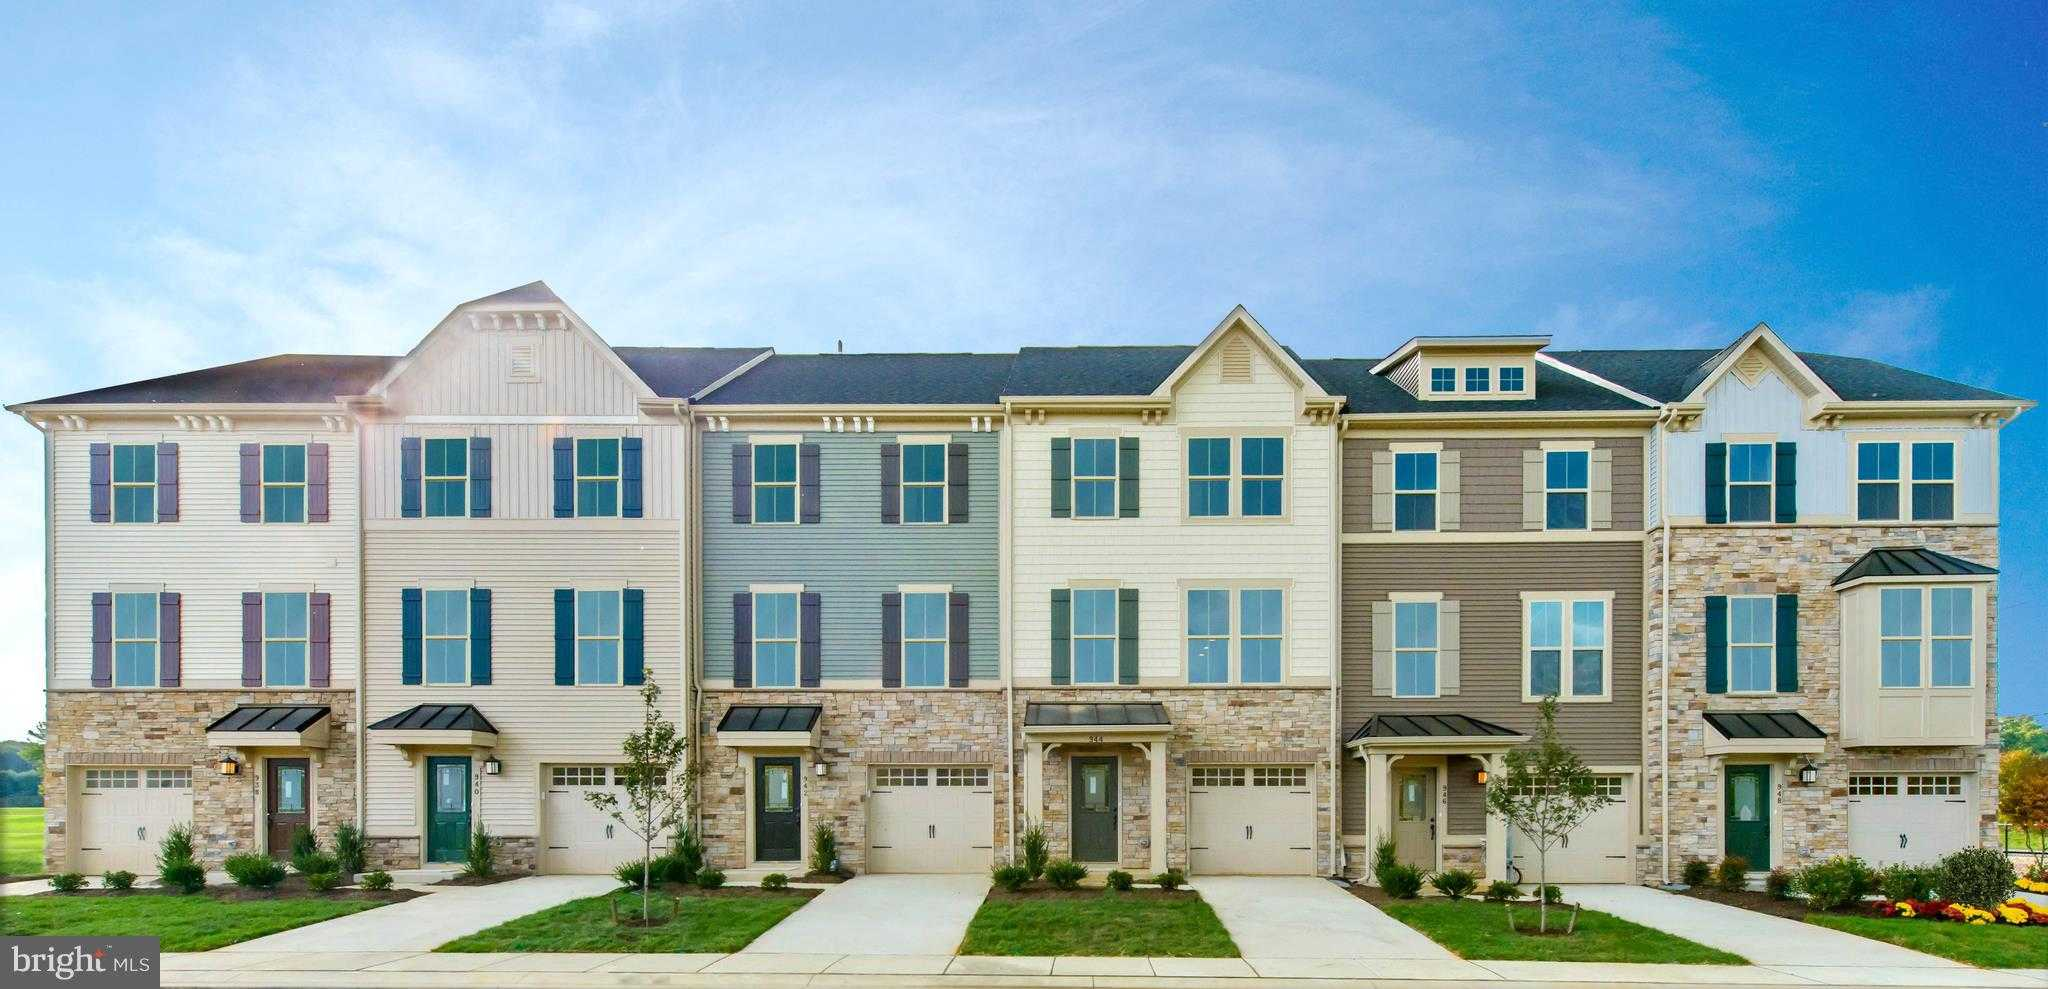 $303,340 - 3Br/3Ba -  for Sale in None Available, Edgemere